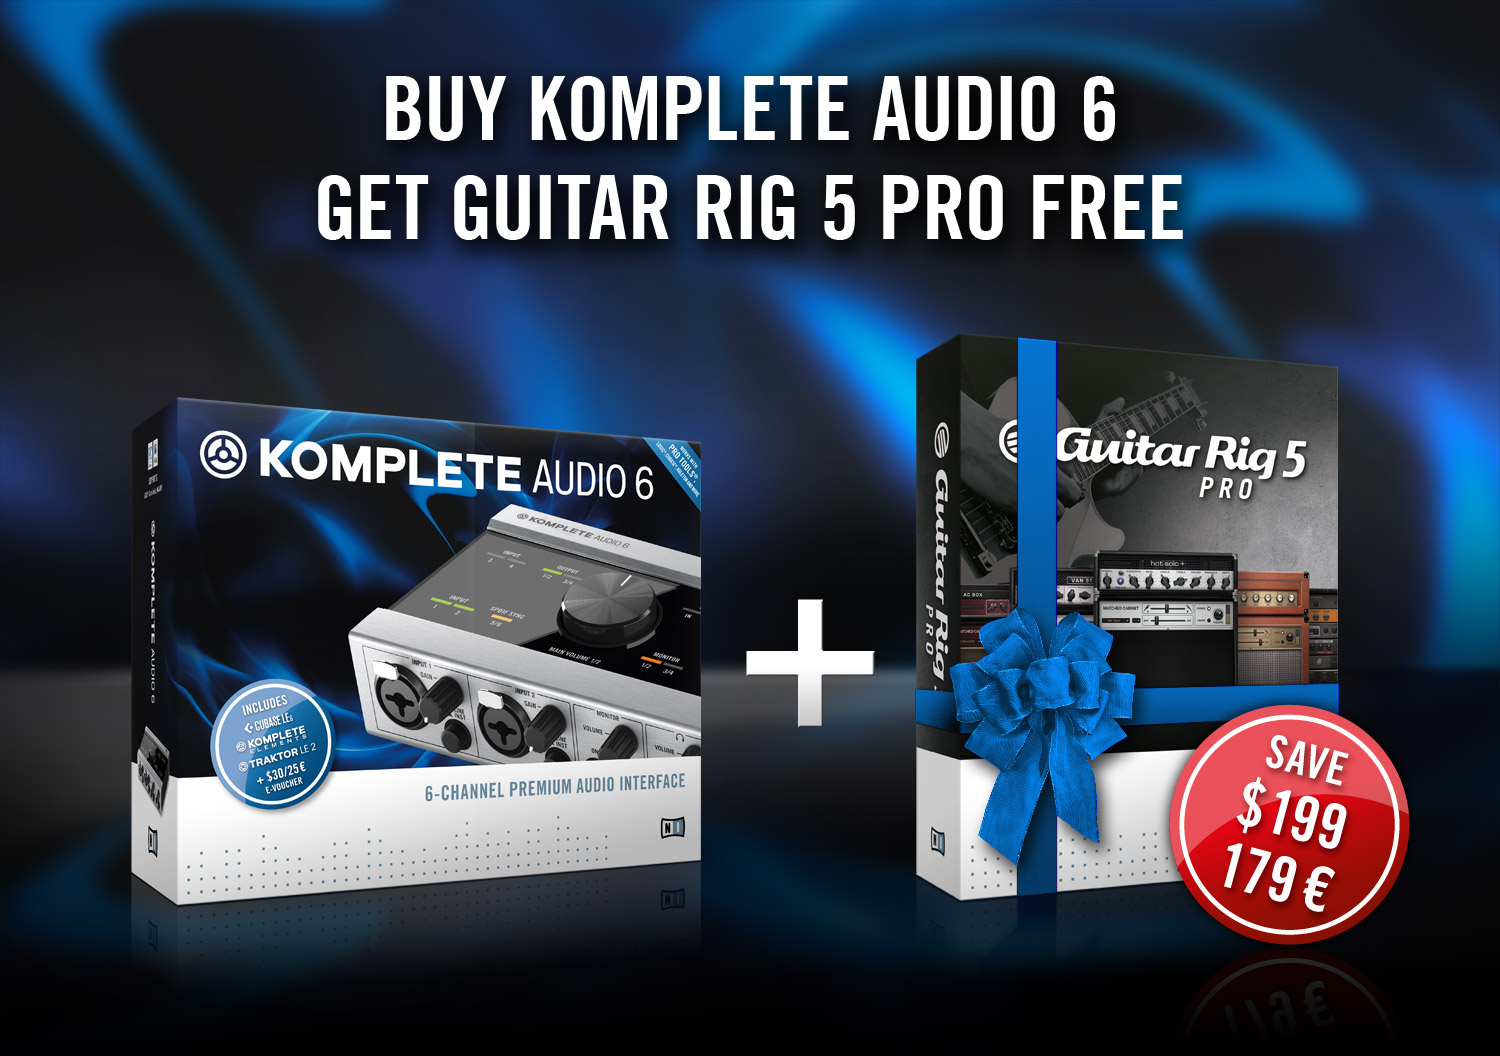 Native Instruments Komplete Audio 6 and Guitar Rig offer